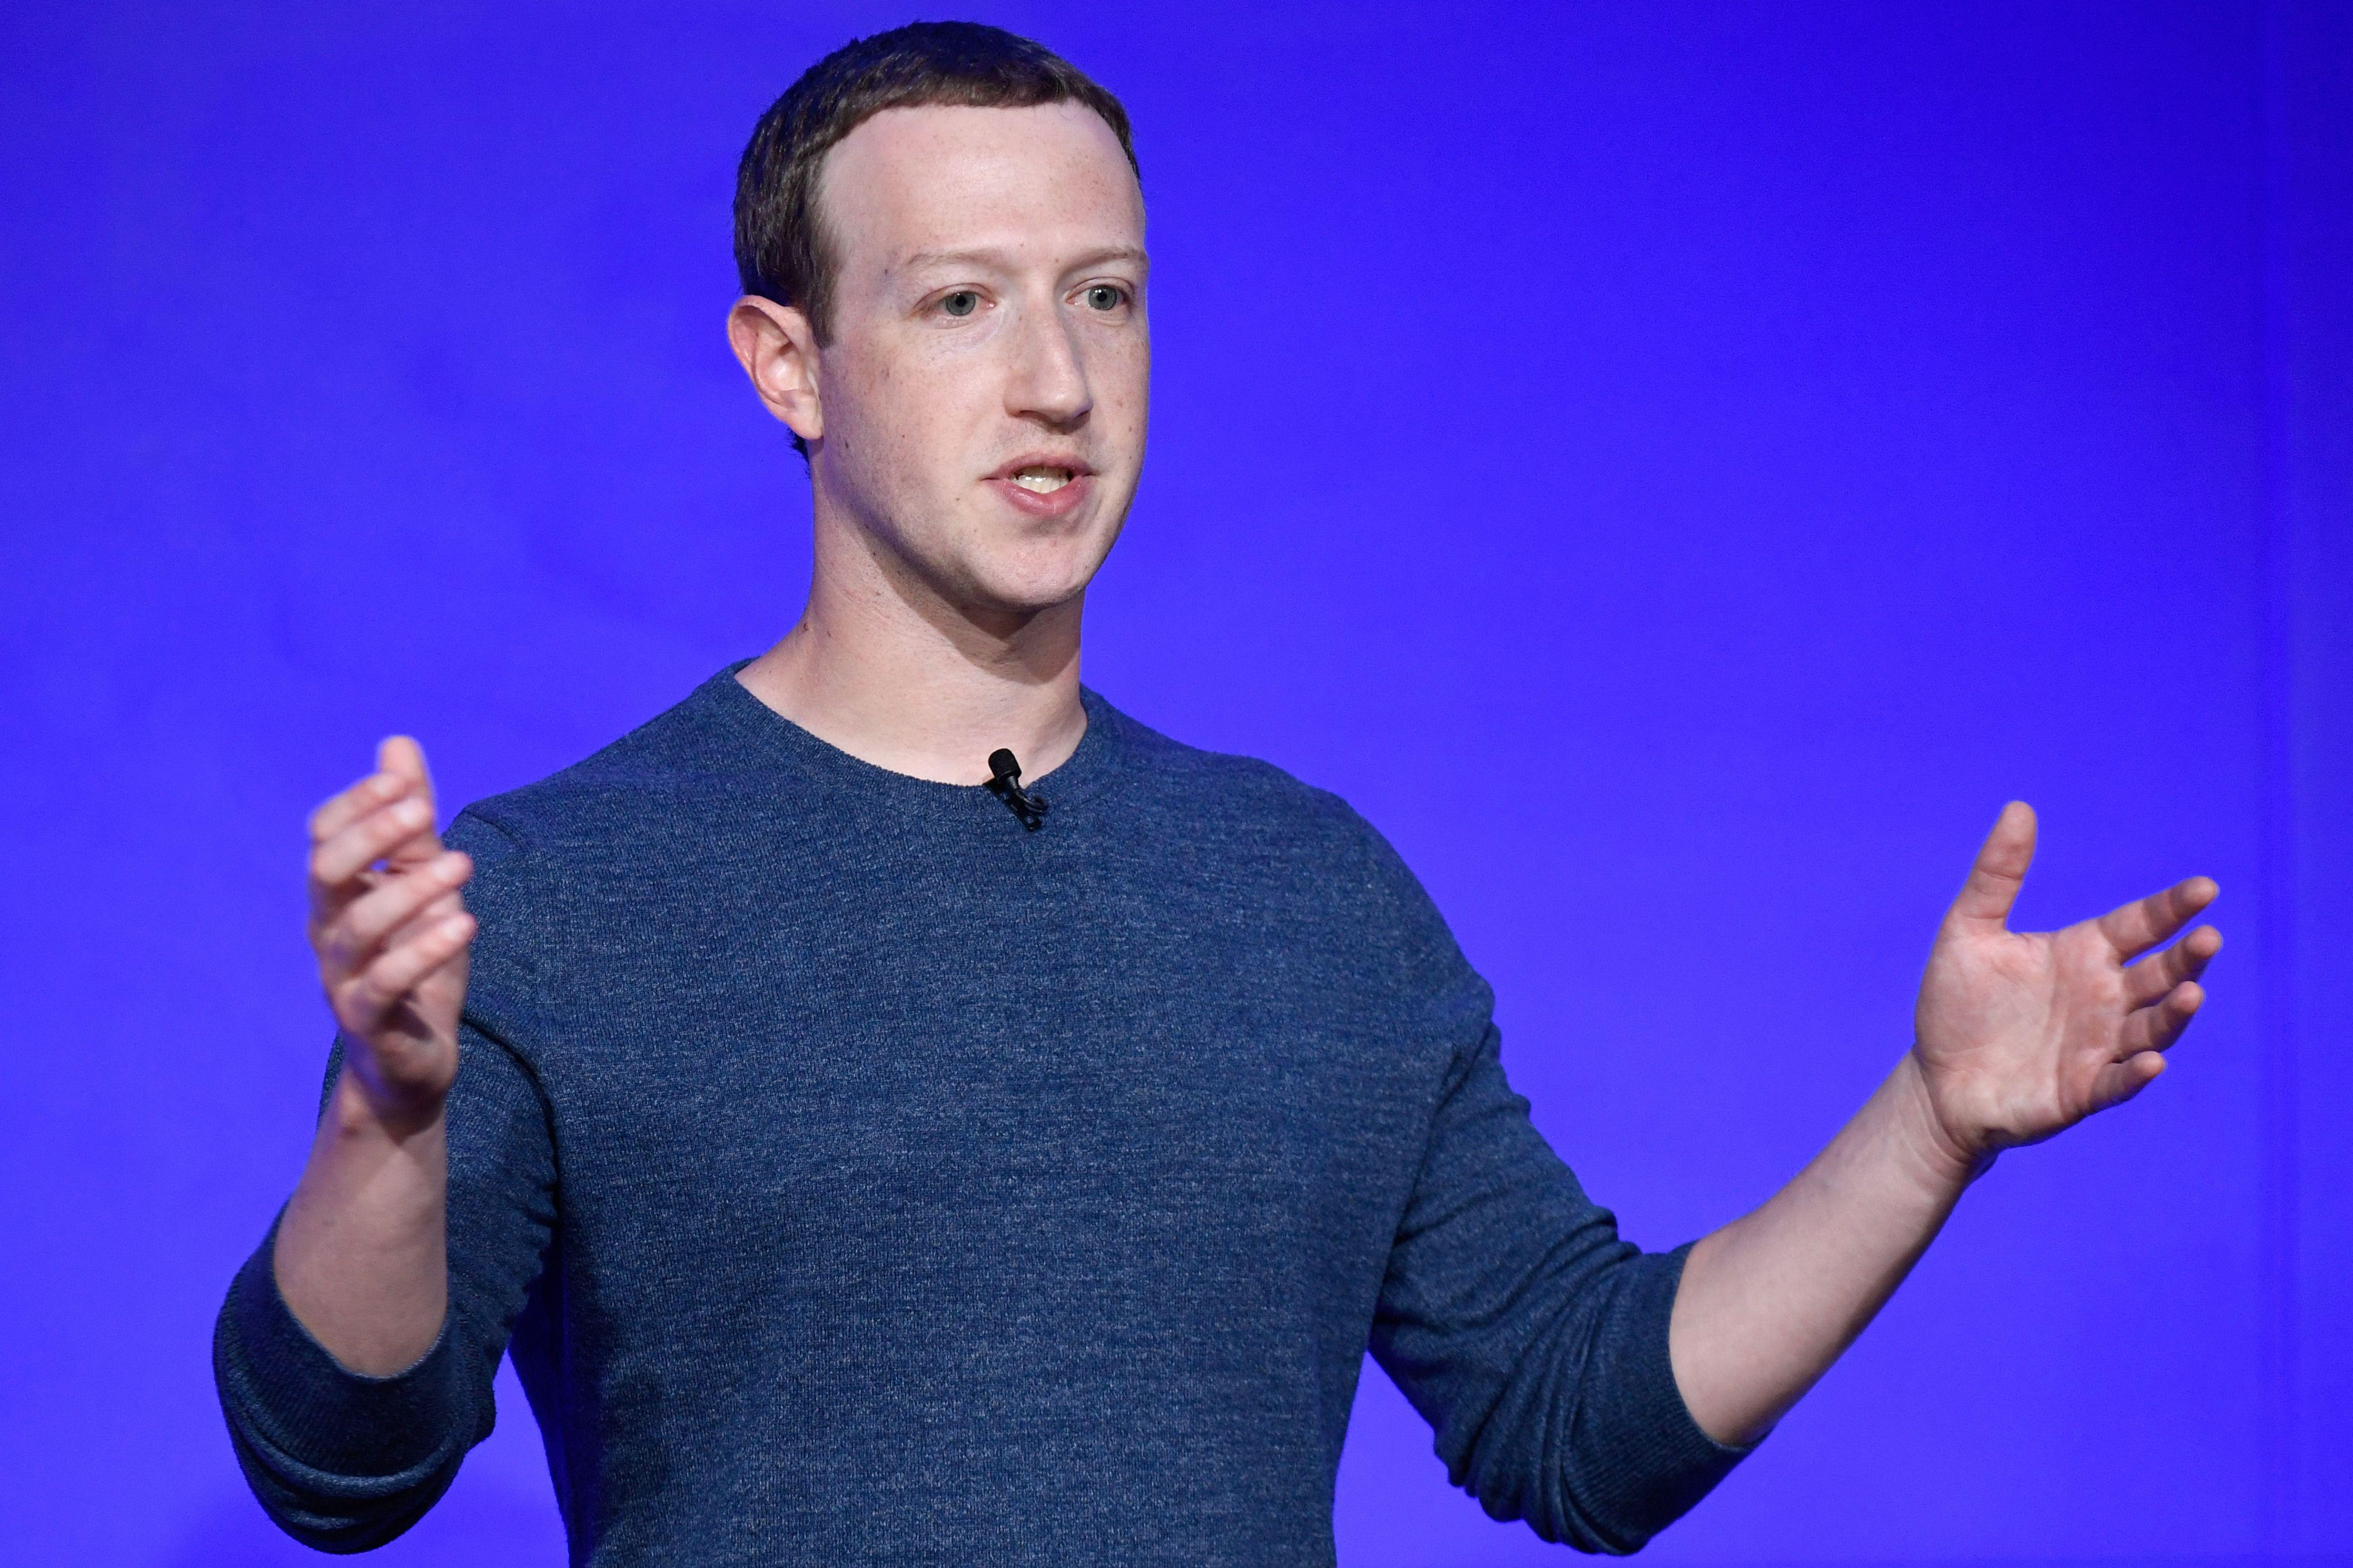 Facebook CEO Mark Zuckerberg speaks during a press conference on May 23, 2018.